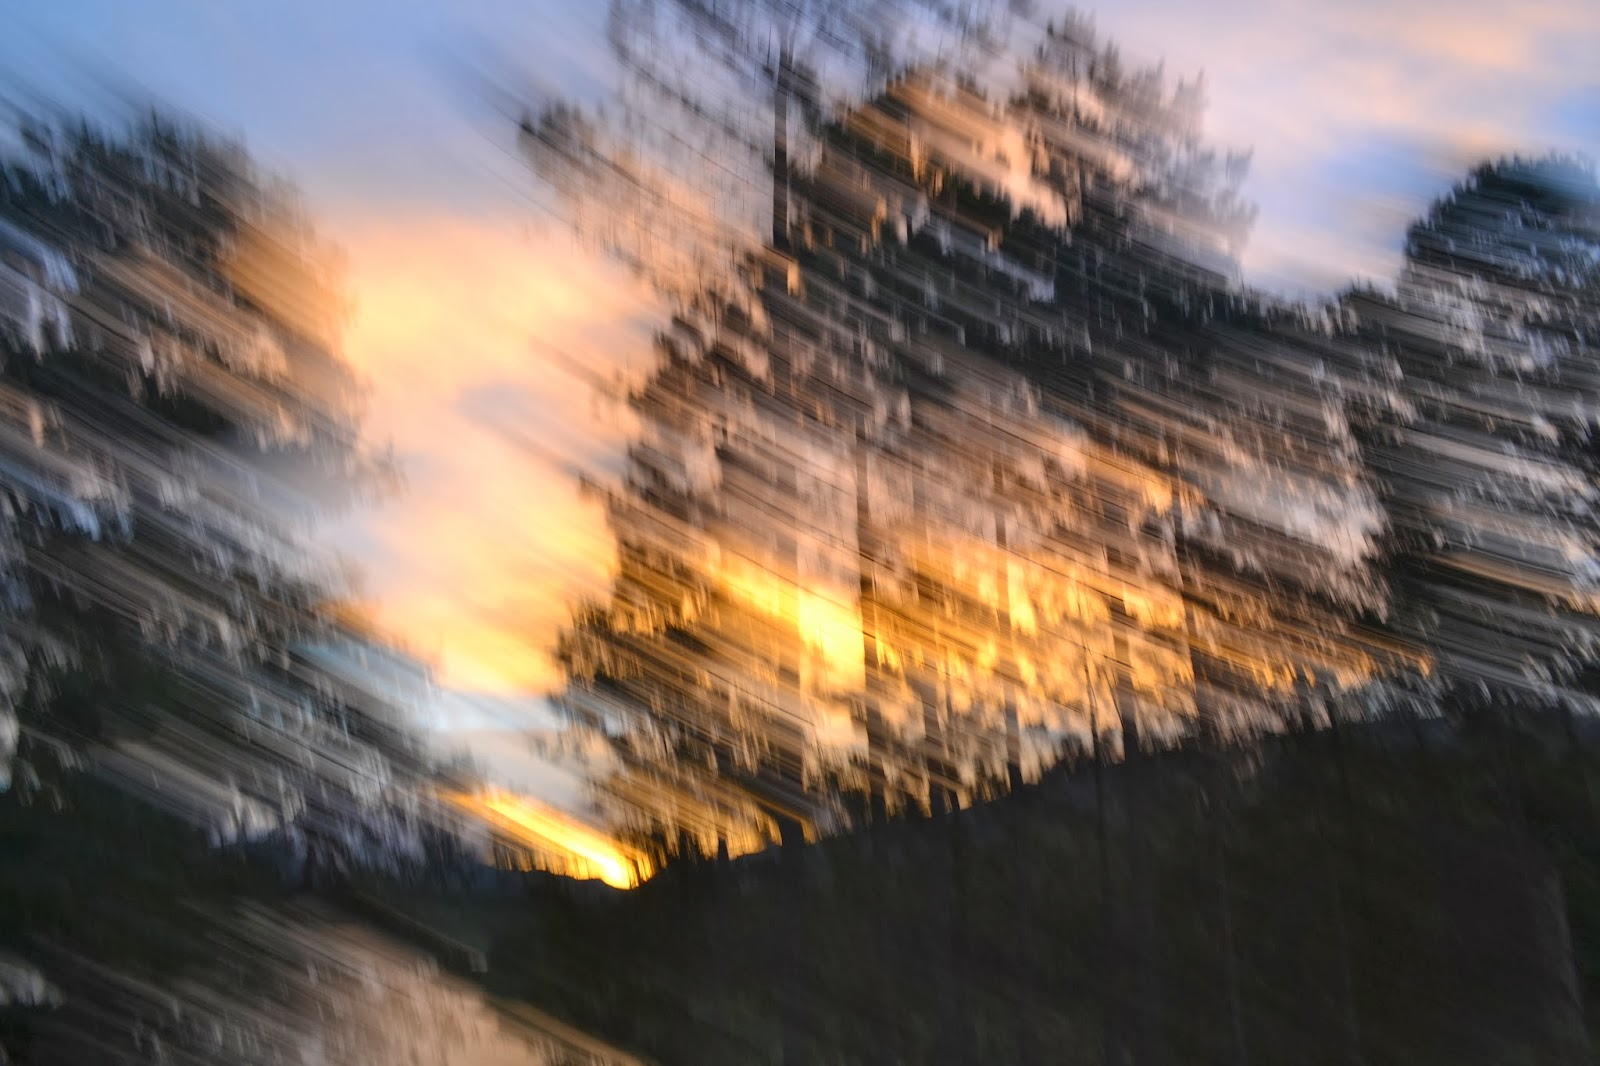 Sunset through the trees blurry